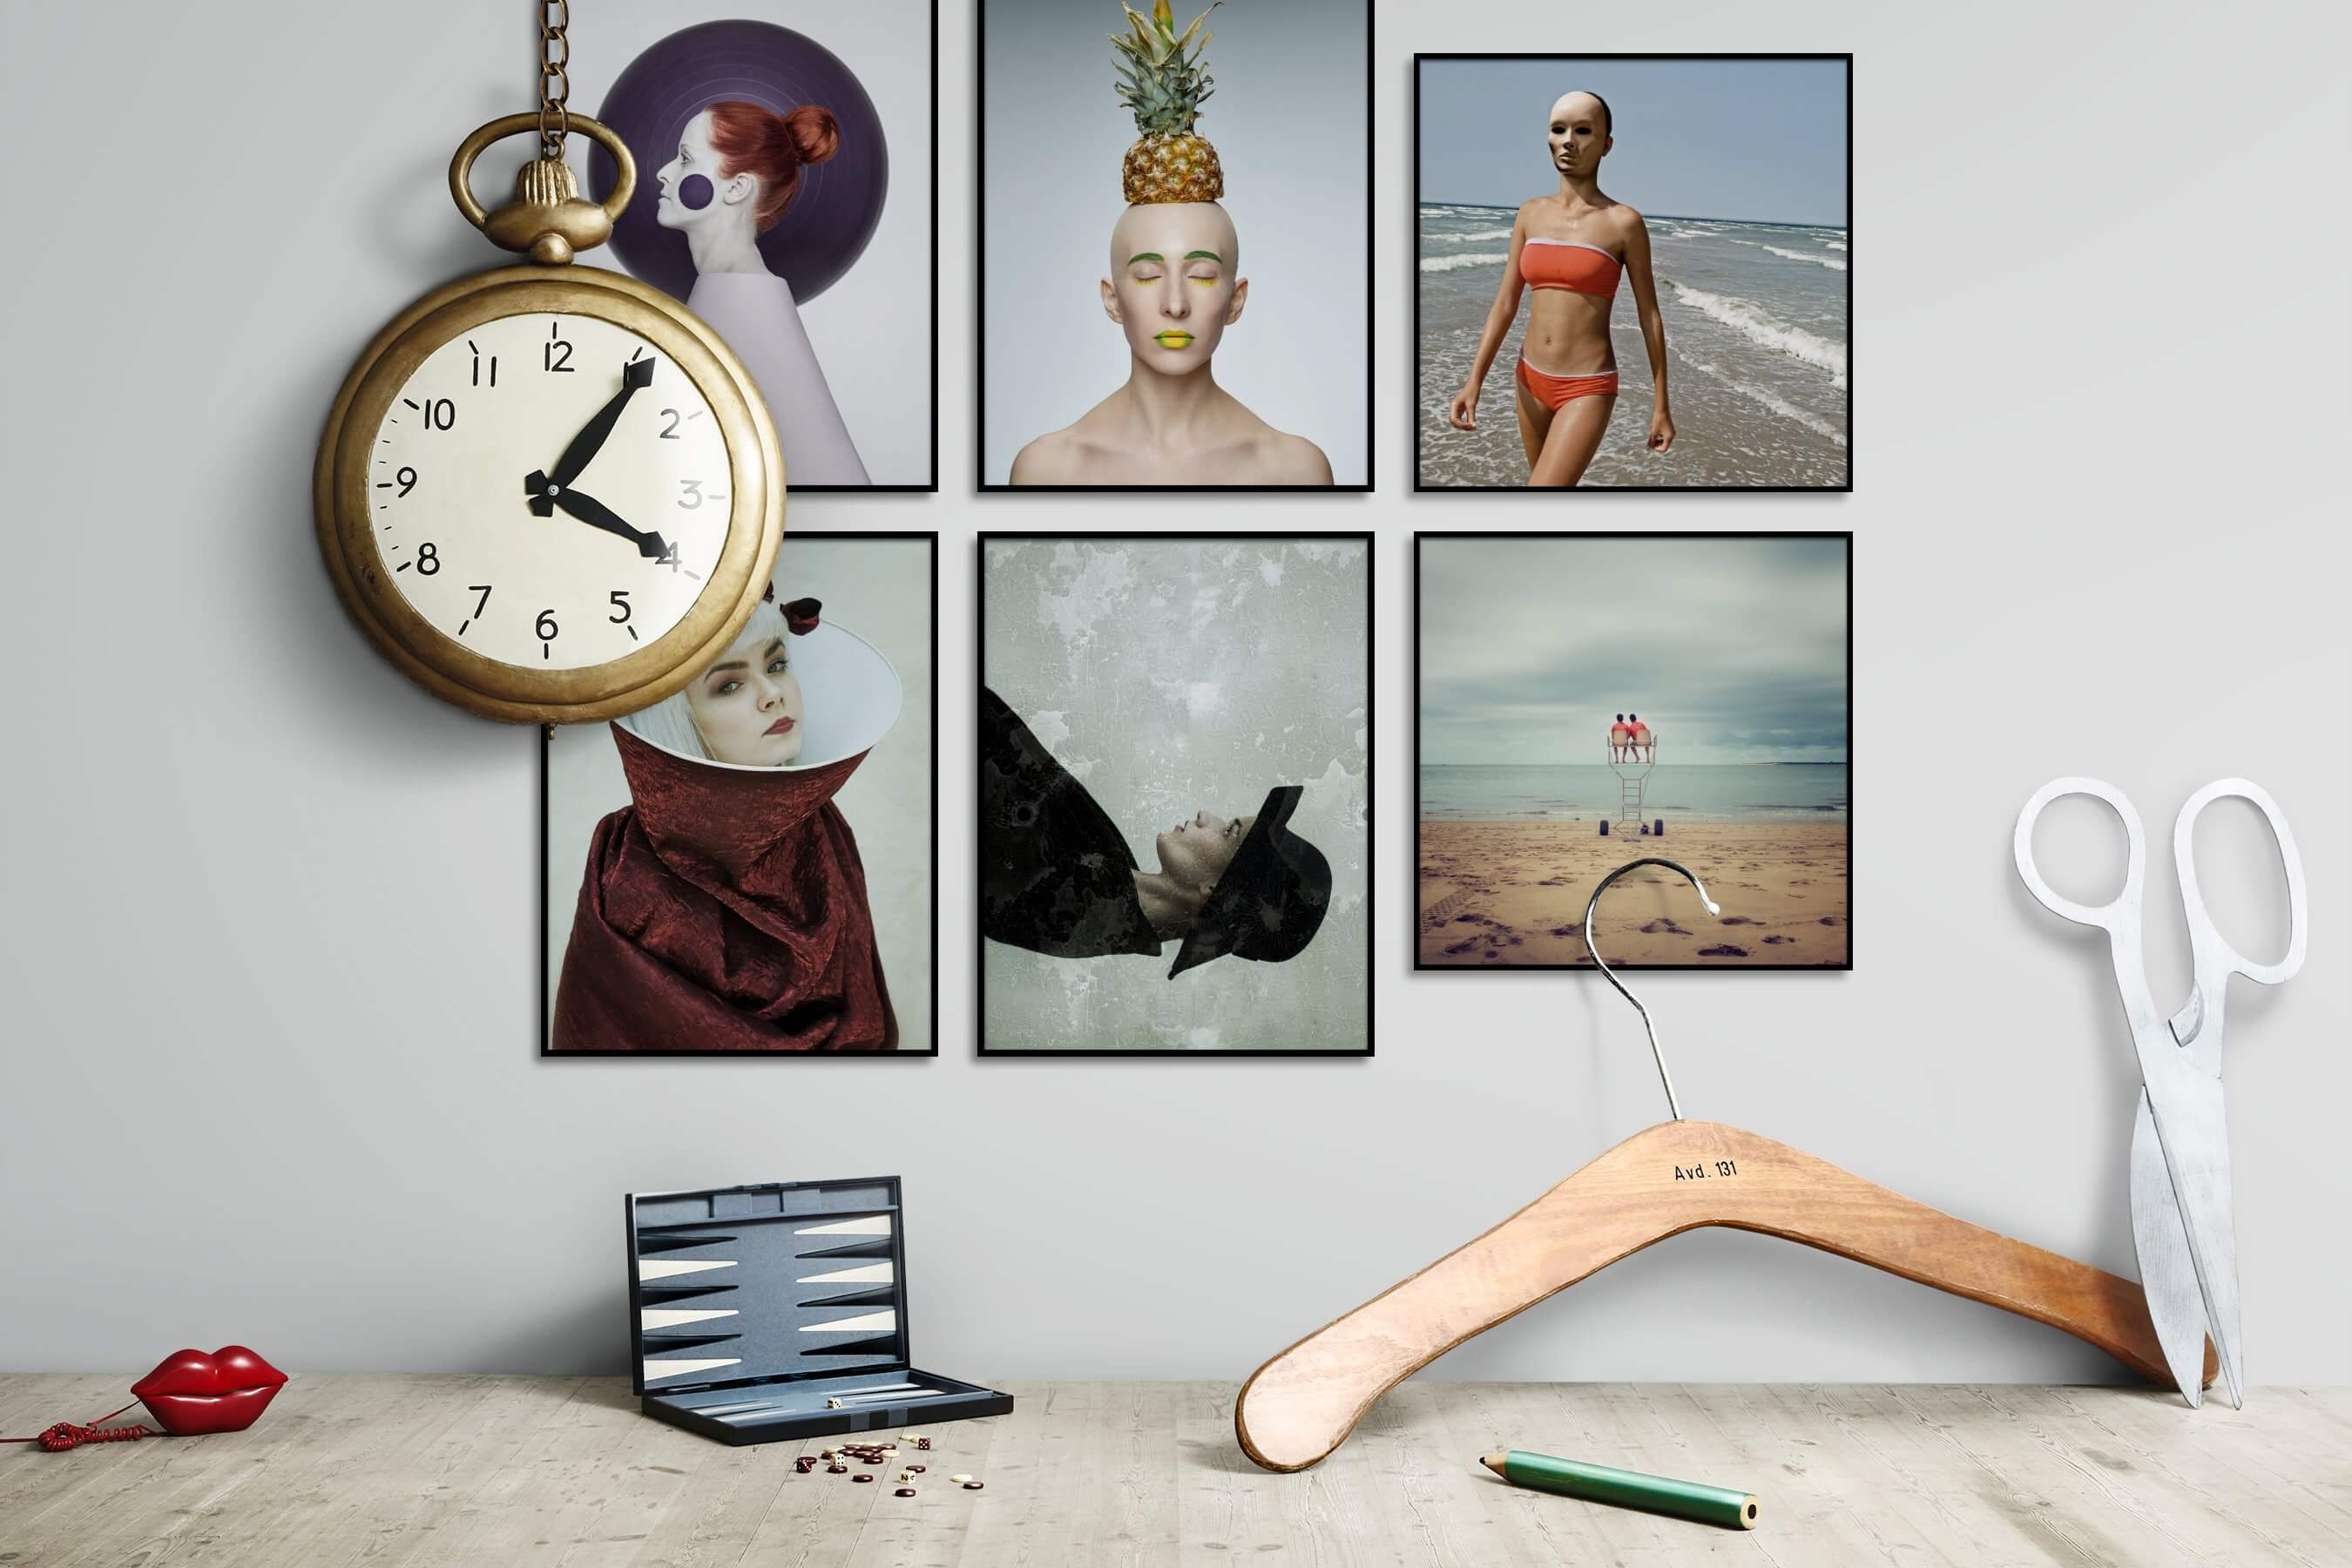 Gallery wall idea with six framed pictures arranged on a wall depicting Artsy, Fashion & Beauty, For the Moderate, For the Minimalist, Vintage, and Beach & Water